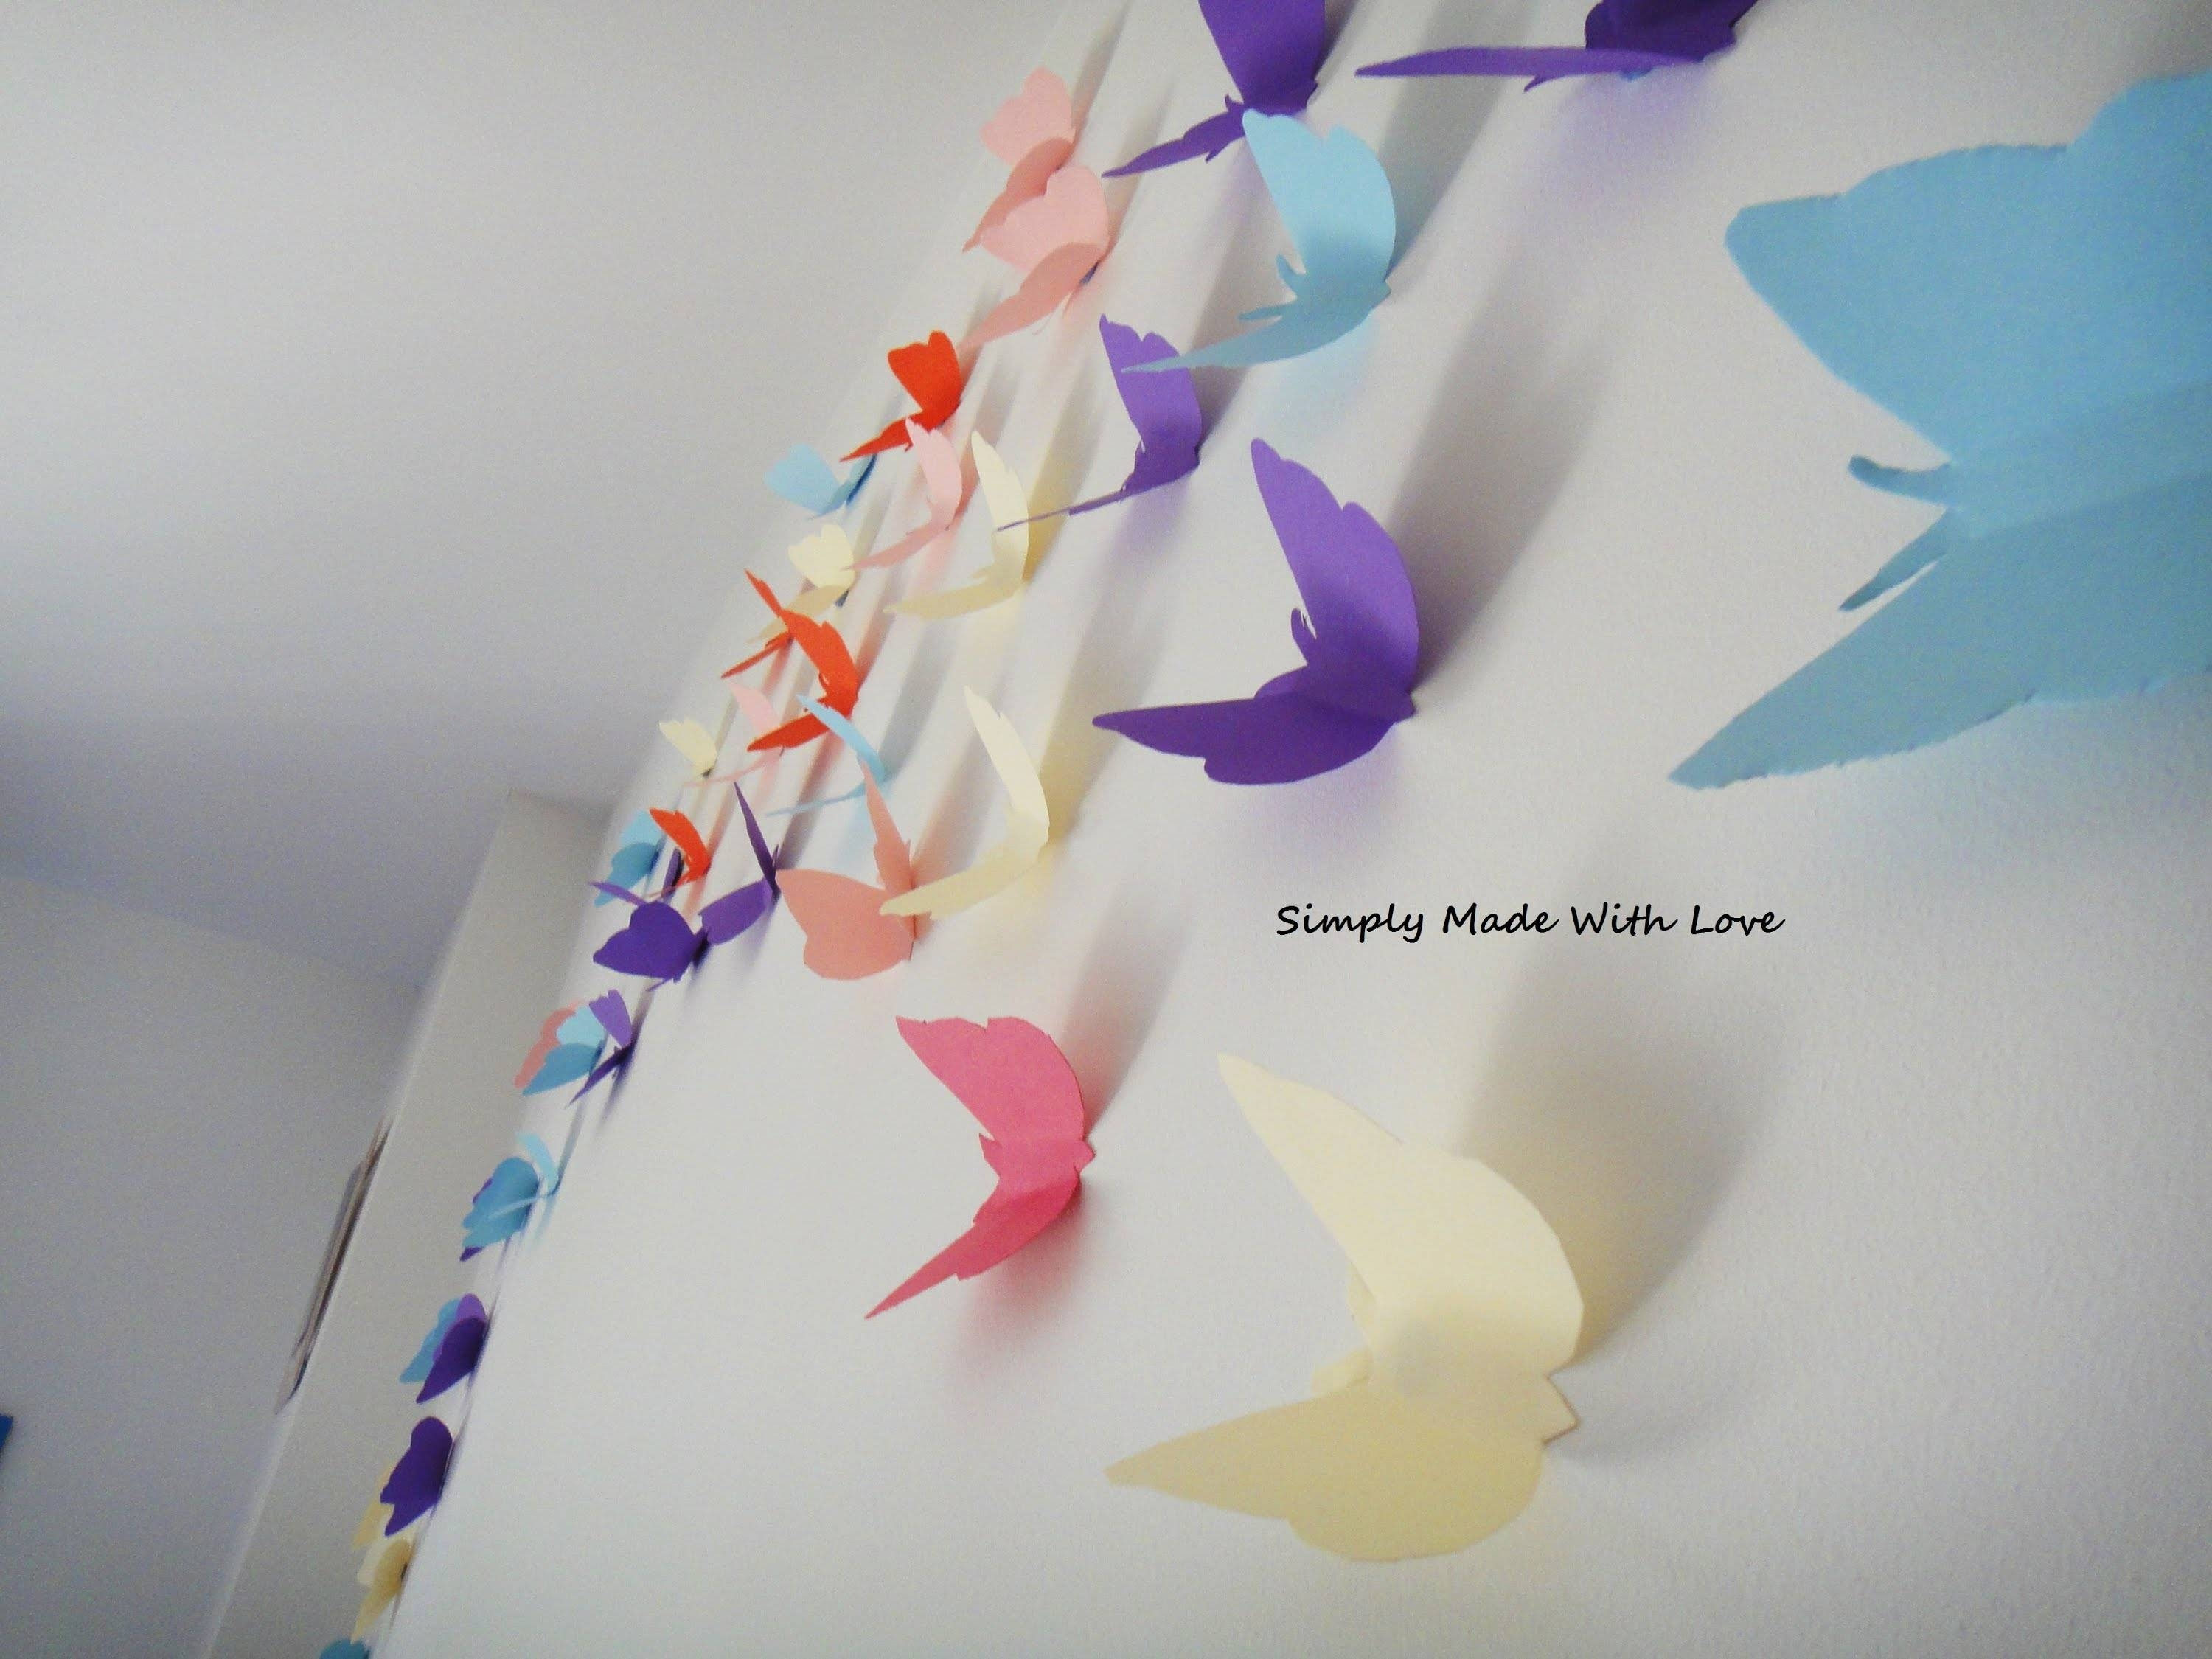 Diy How To Make Beautiful, Cheap And Easy, 3D Wall Decoration With Throughout Recent Diy 3D Wall Art Butterflies (View 8 of 20)